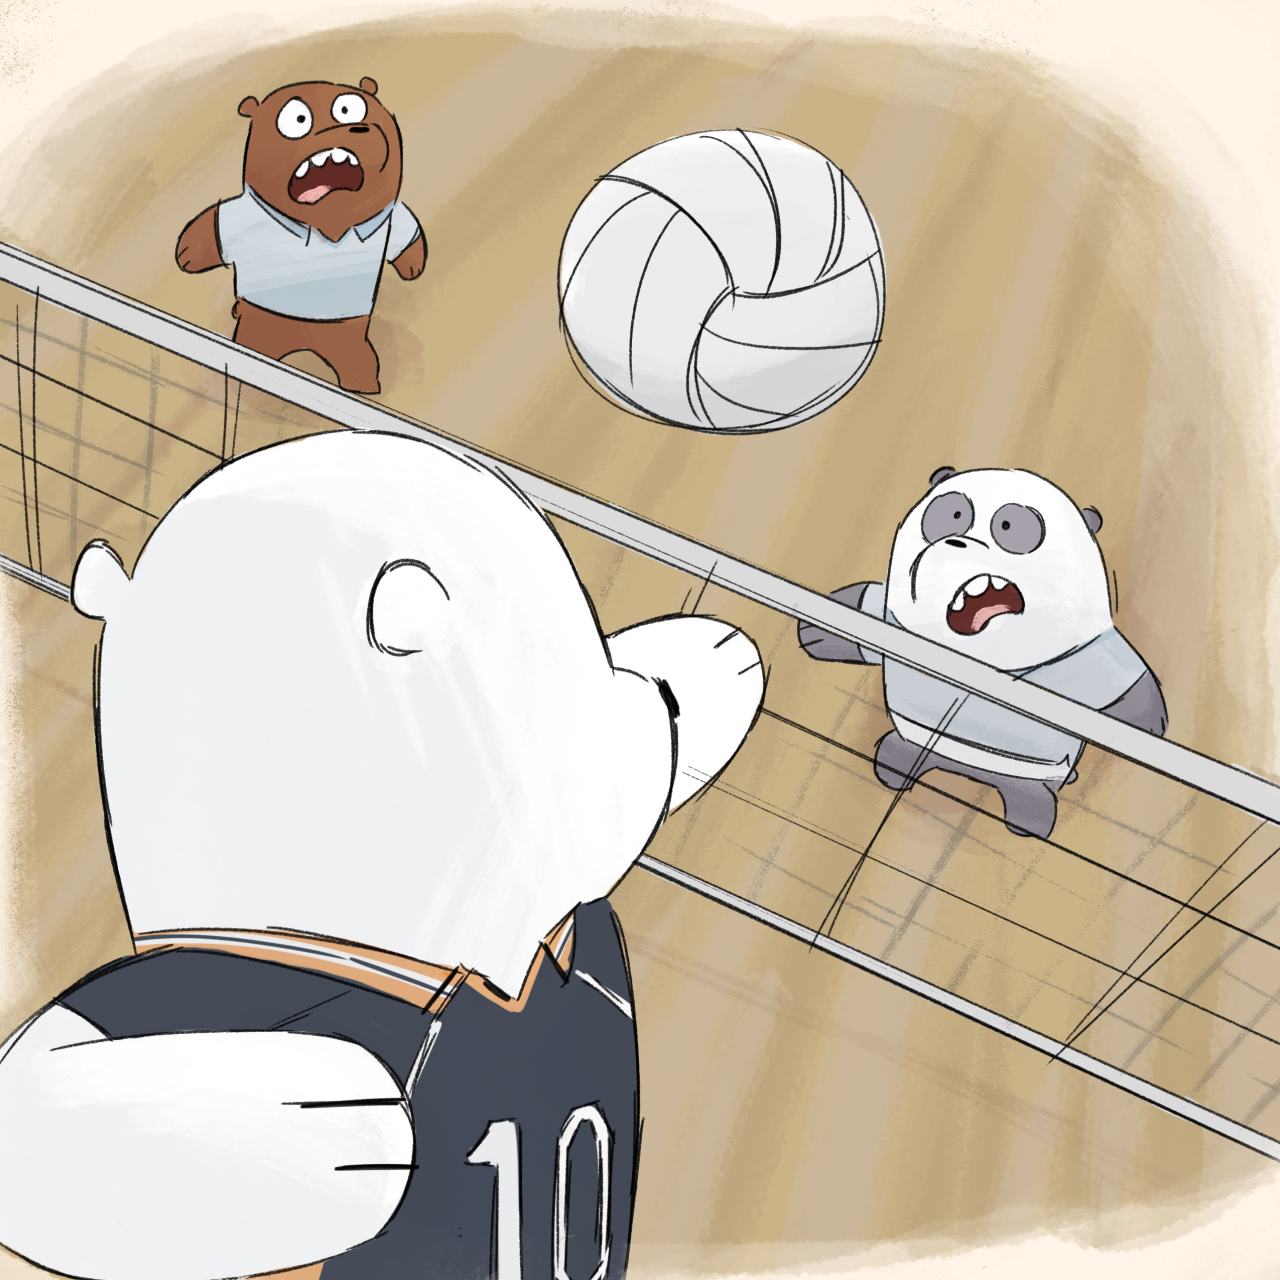 The Weeb Bare Bears take up Volleyball